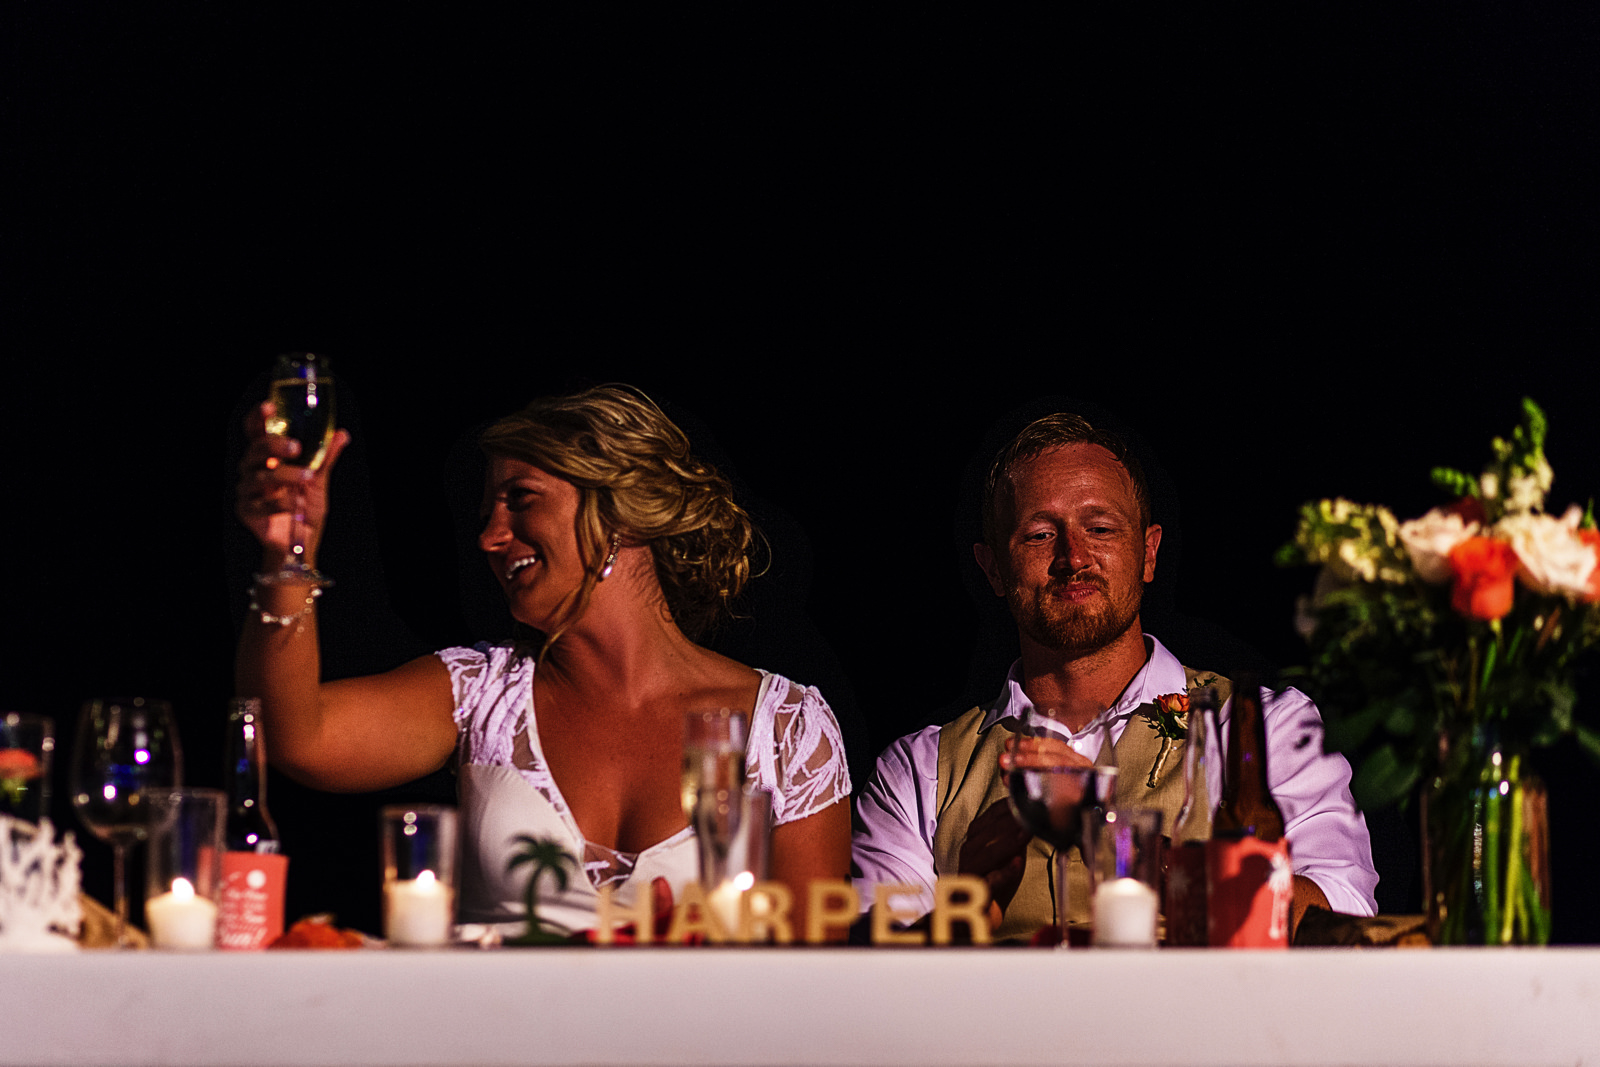 Bride raising a glass of champagne during best man's speech